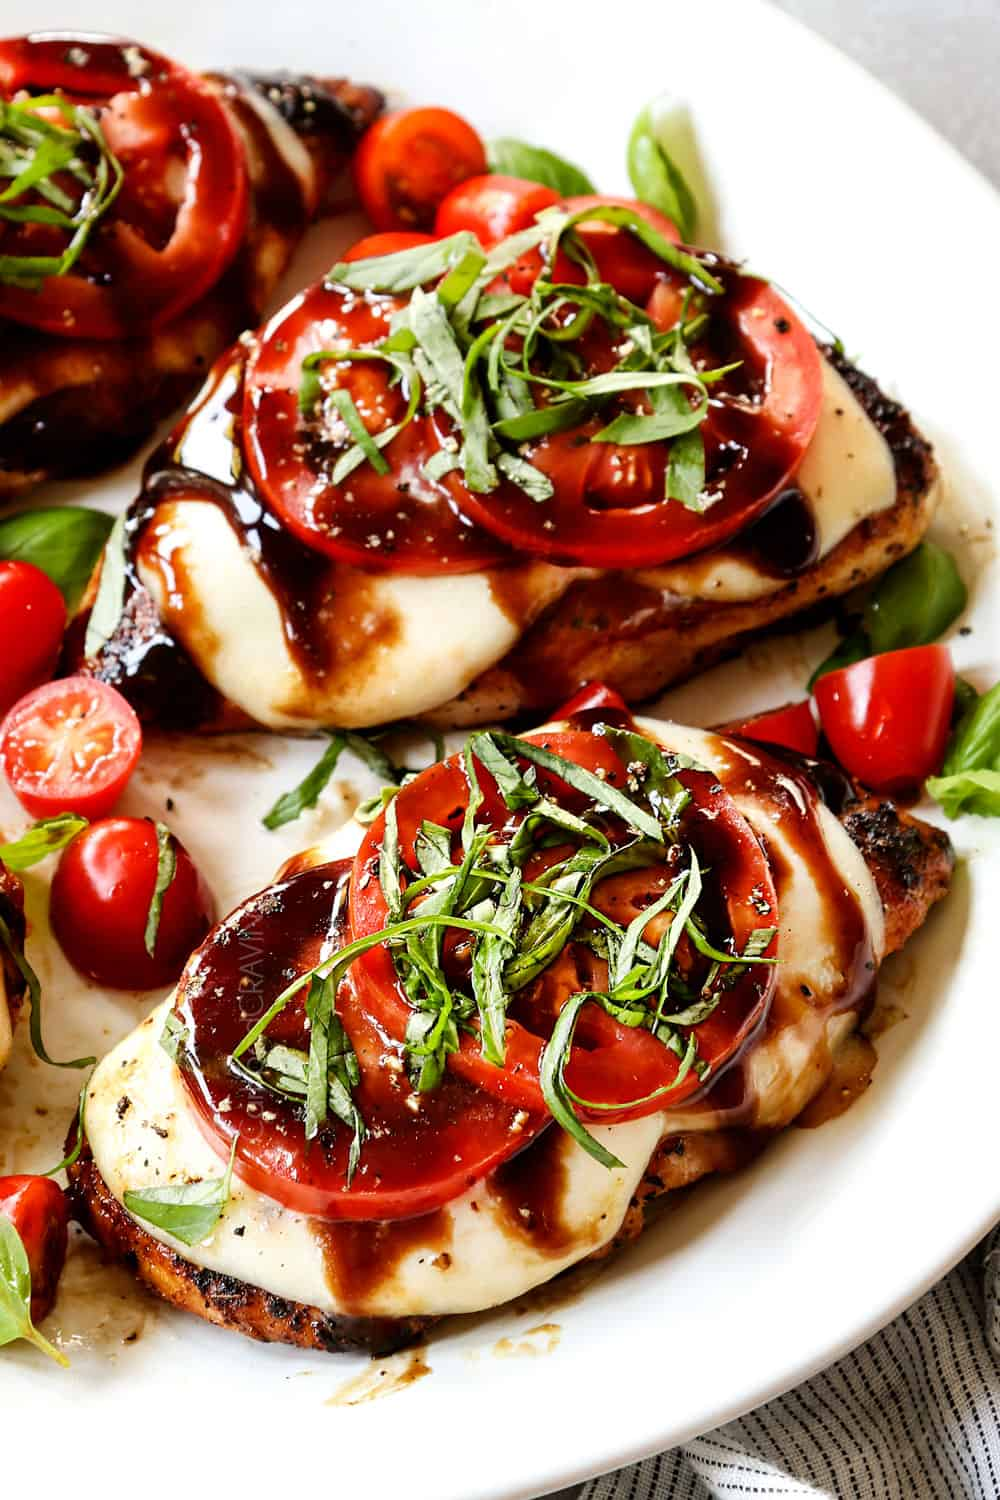 up close of chicken caprese recipe being served on a white plate with mozzarella, tomatoes, basil and balsamic reduction (balsamic glaze)